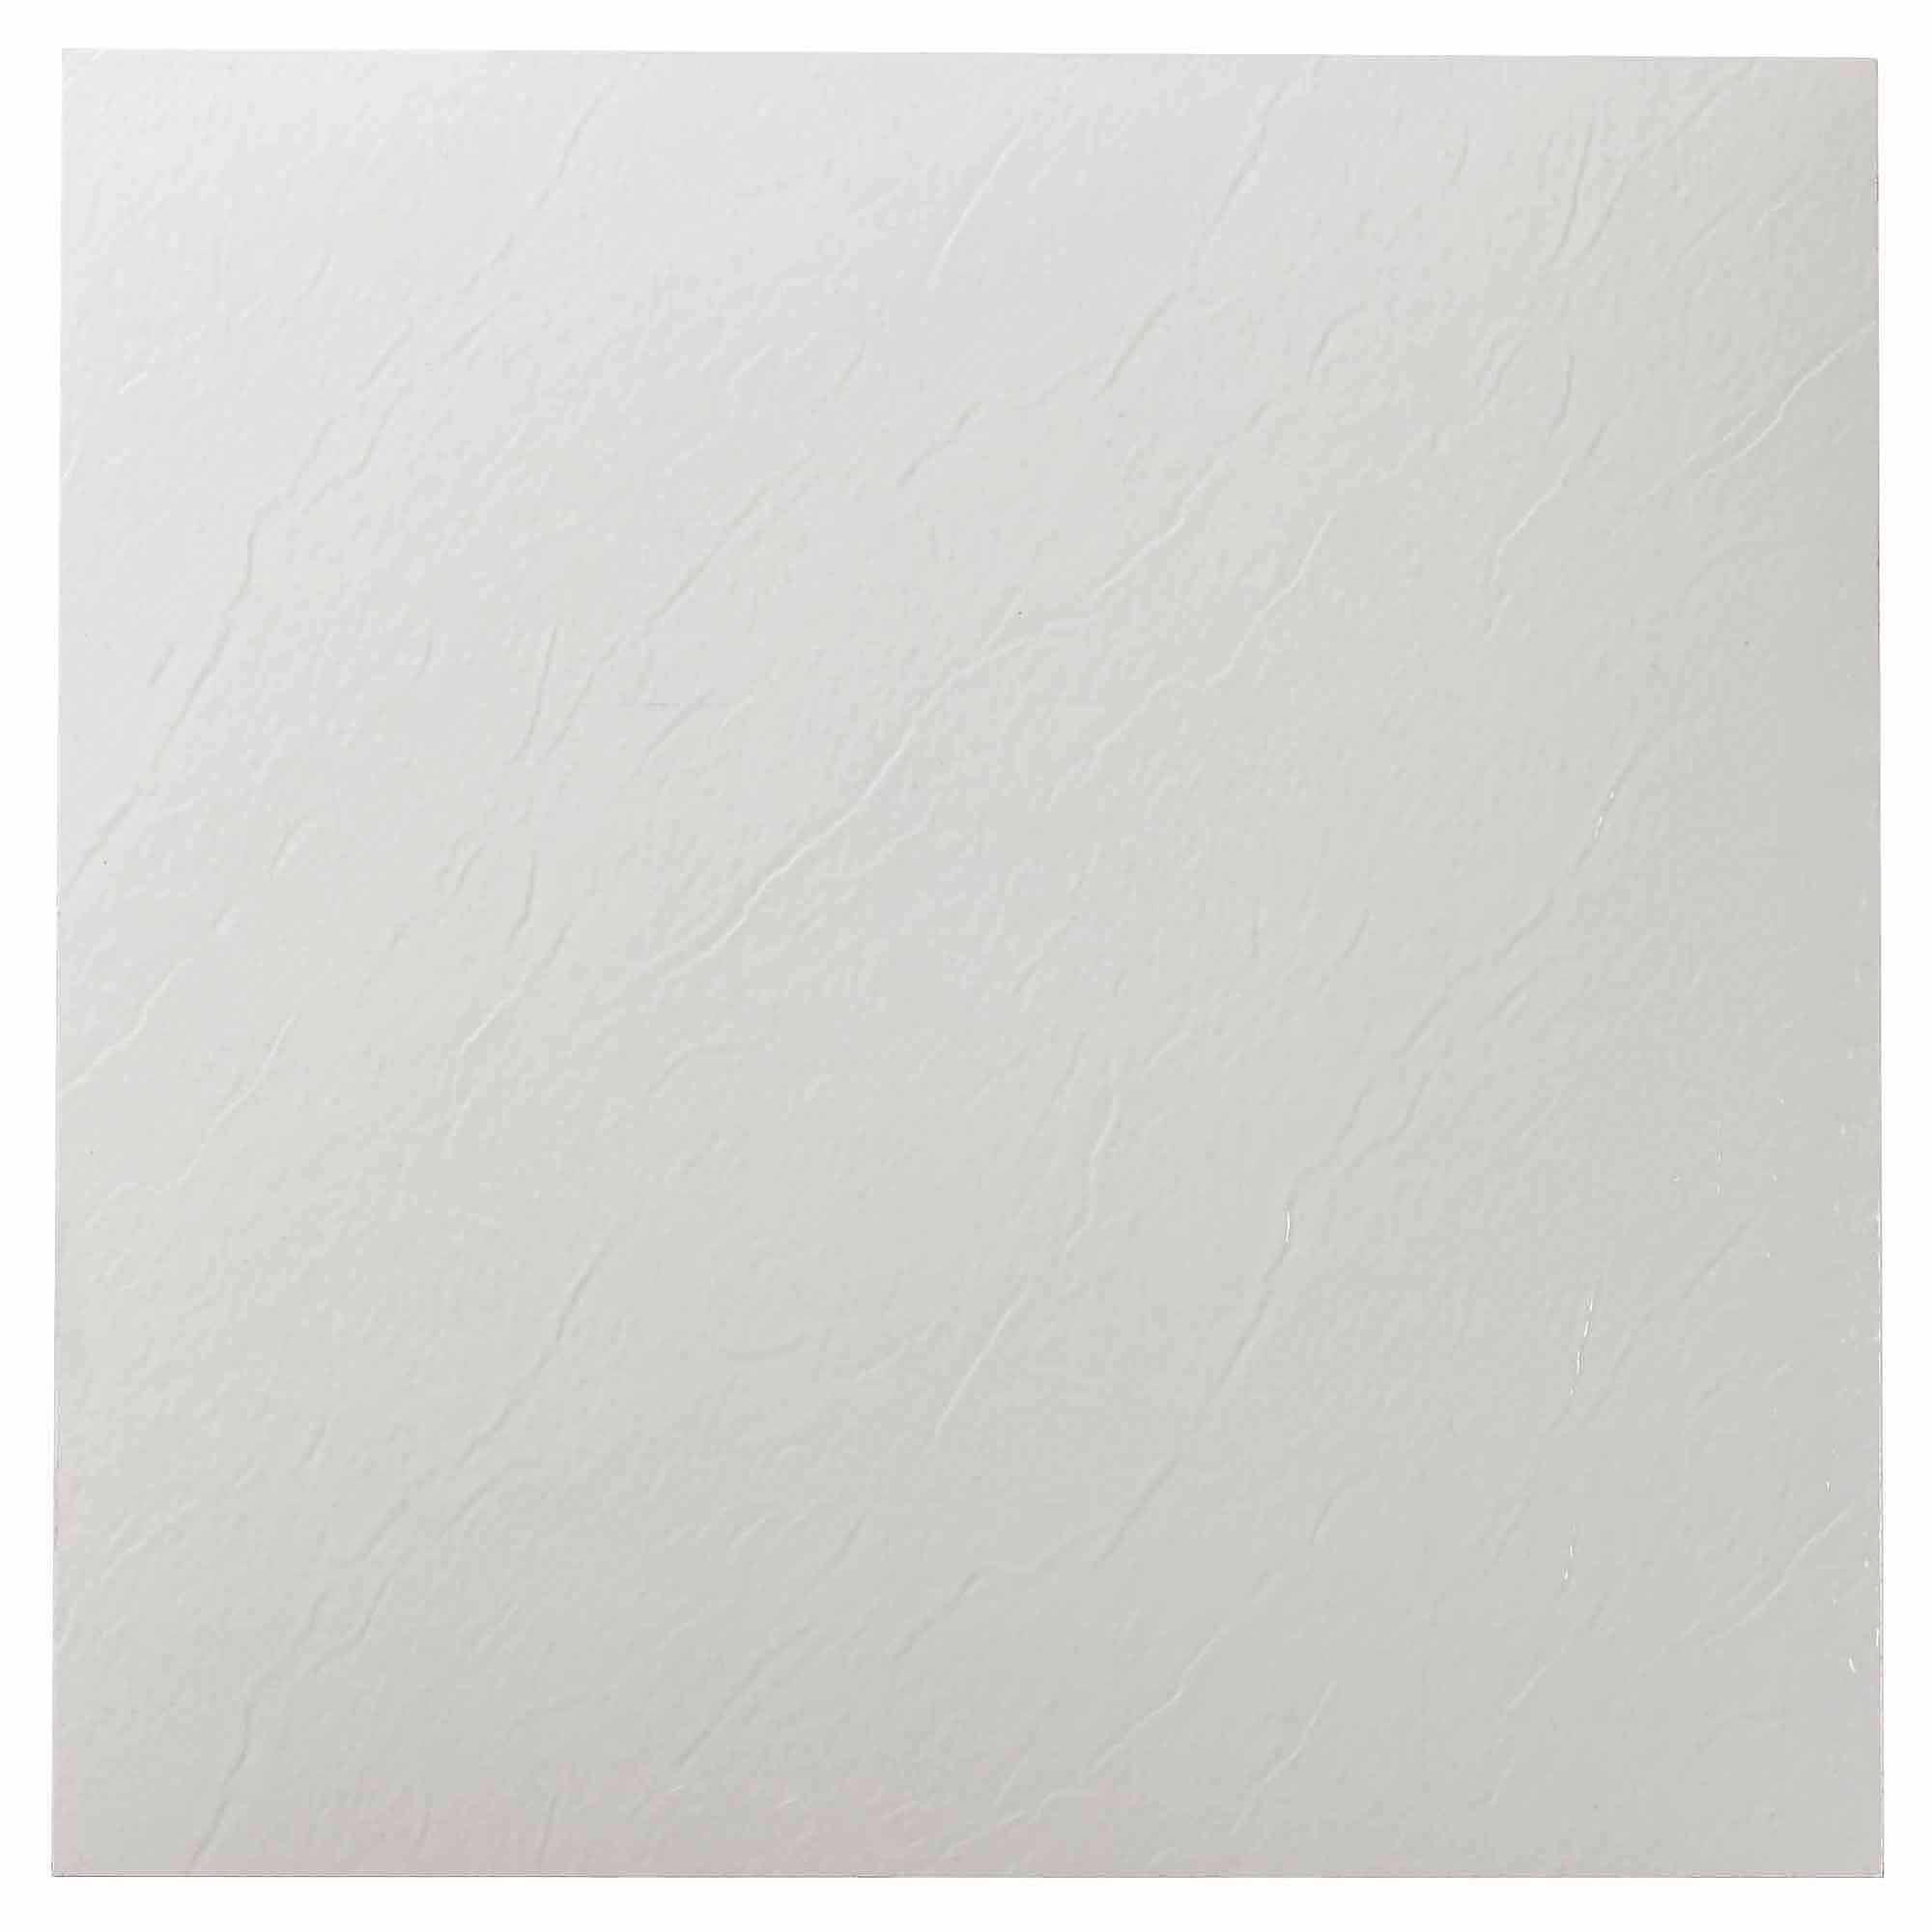 White Tile Pleasing Nexus White 12X12 Self Adhesive Vinyl Floor Tile  20 Tiles20 Sq Design Decoration